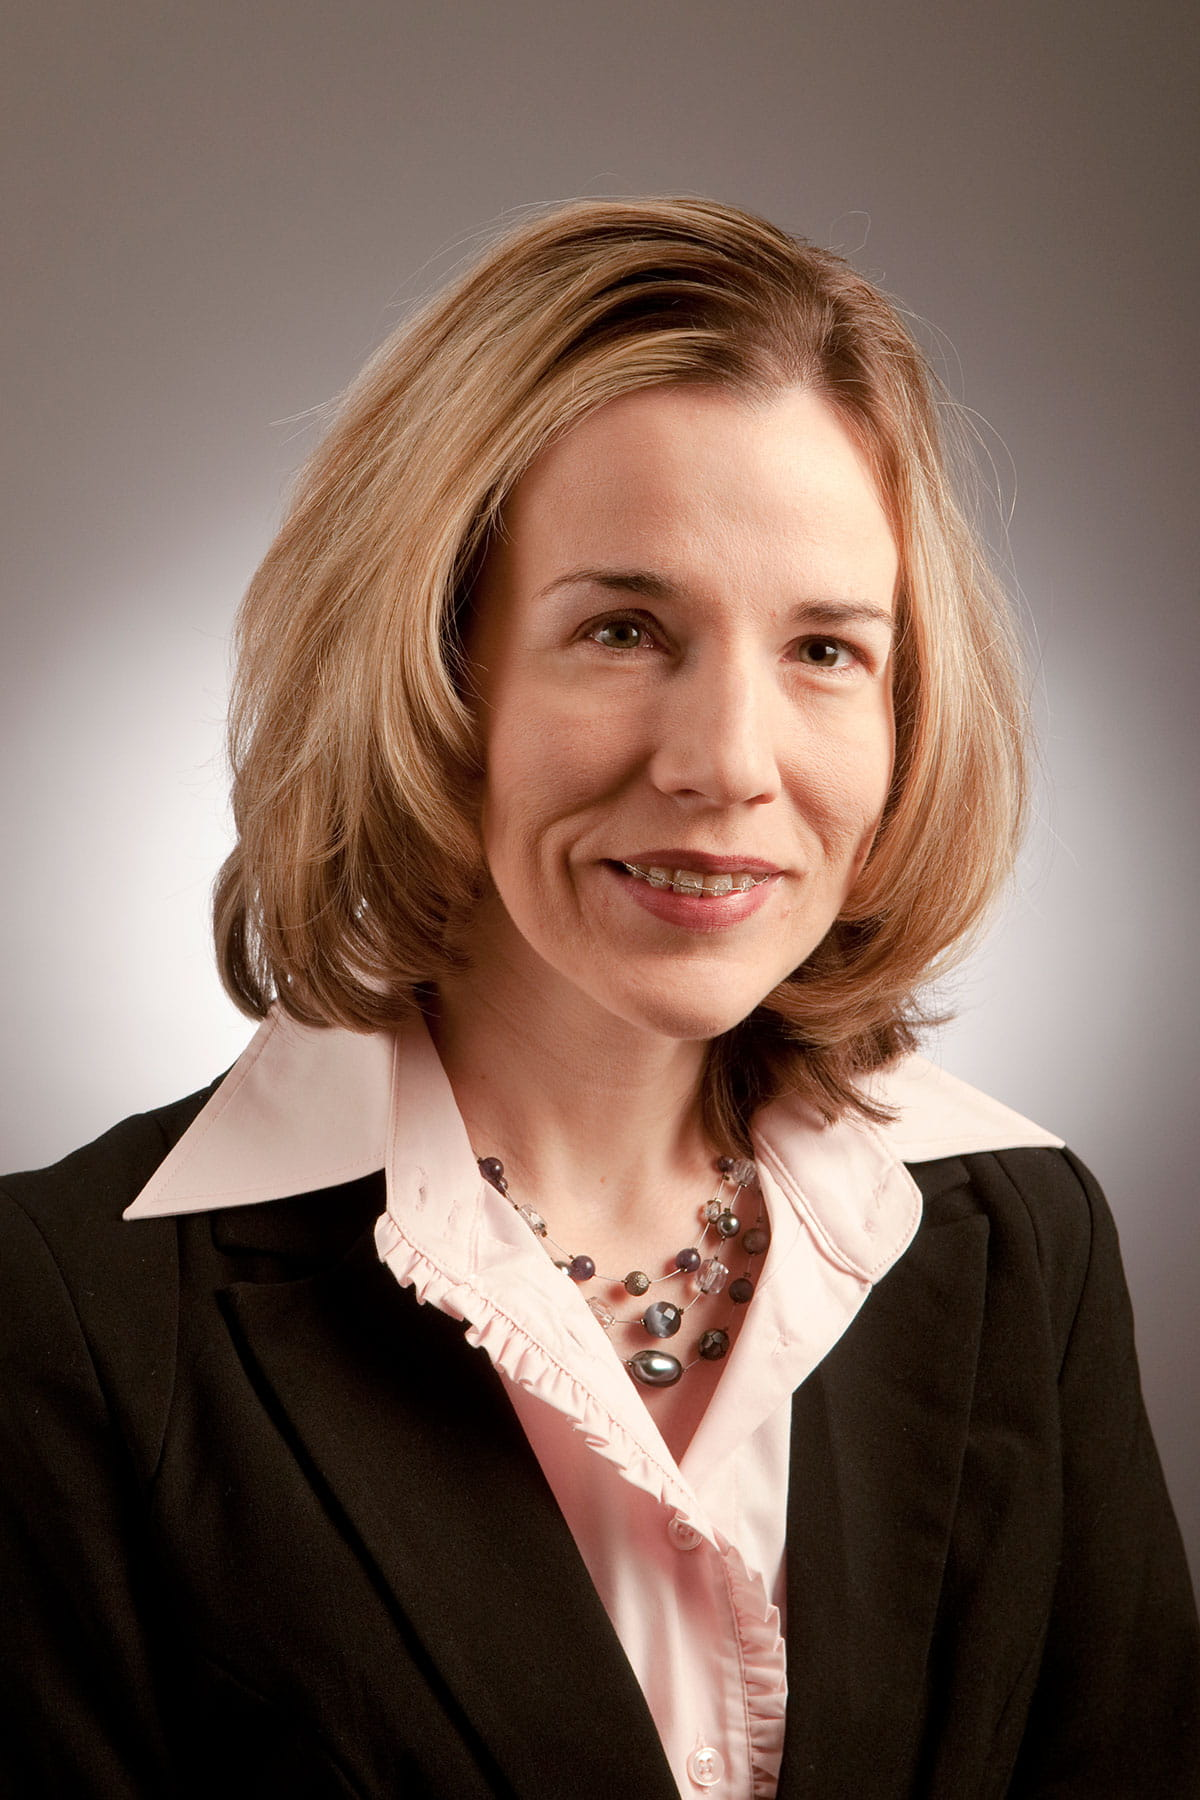 A photo of Janet Beckmeyer.